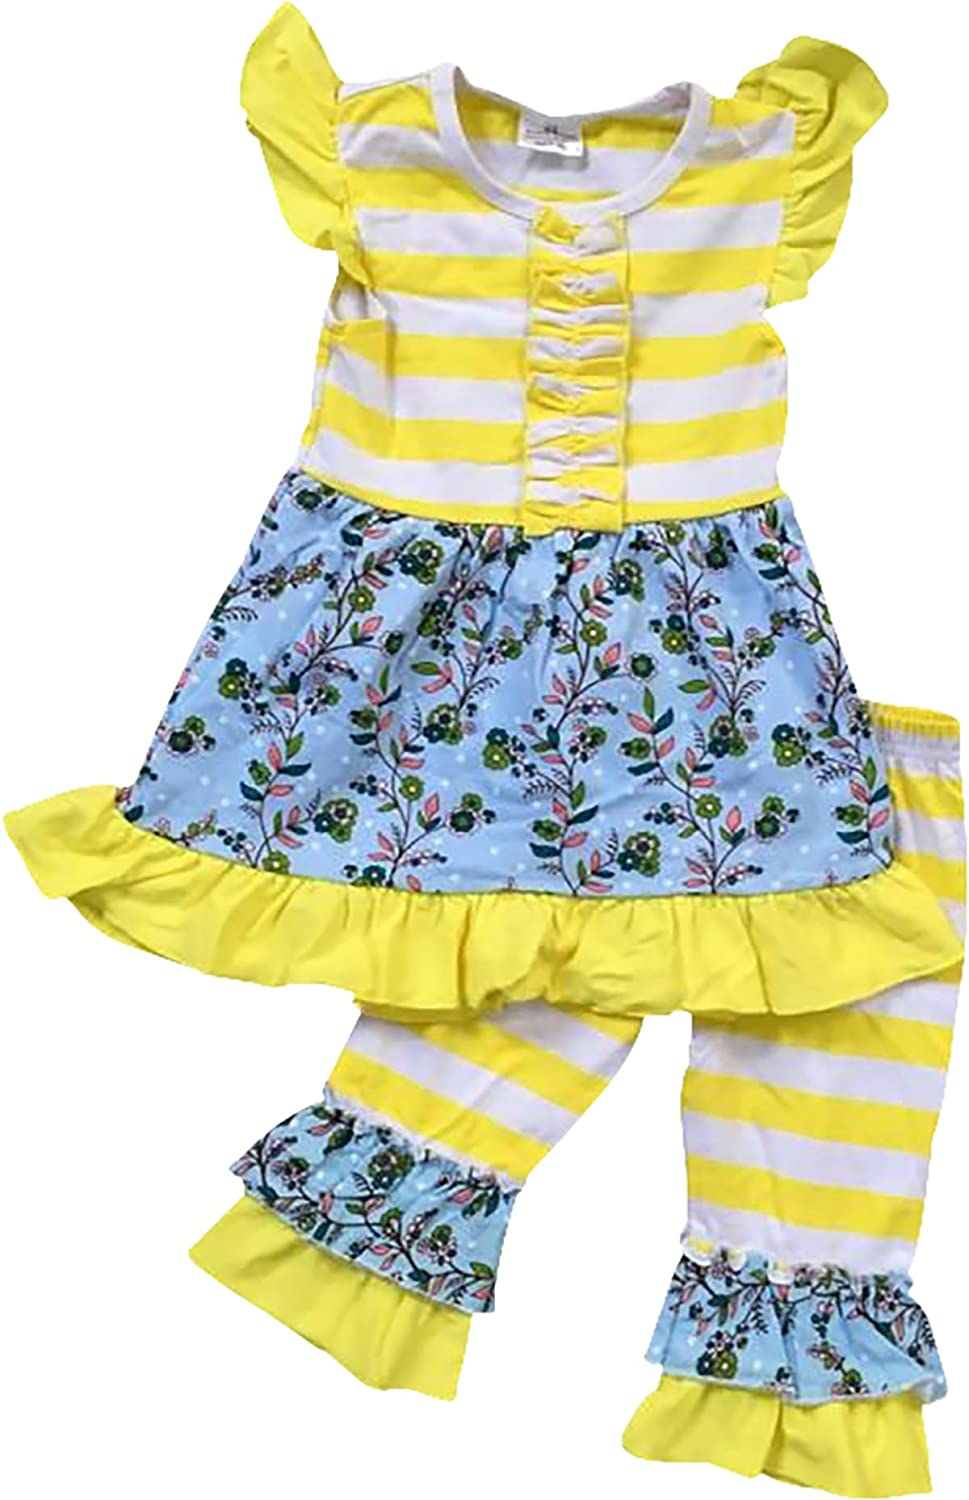 BNY Corner Little Girl Cute Floral Summer Dress Ruffles Pants Outfit Set 2T-8